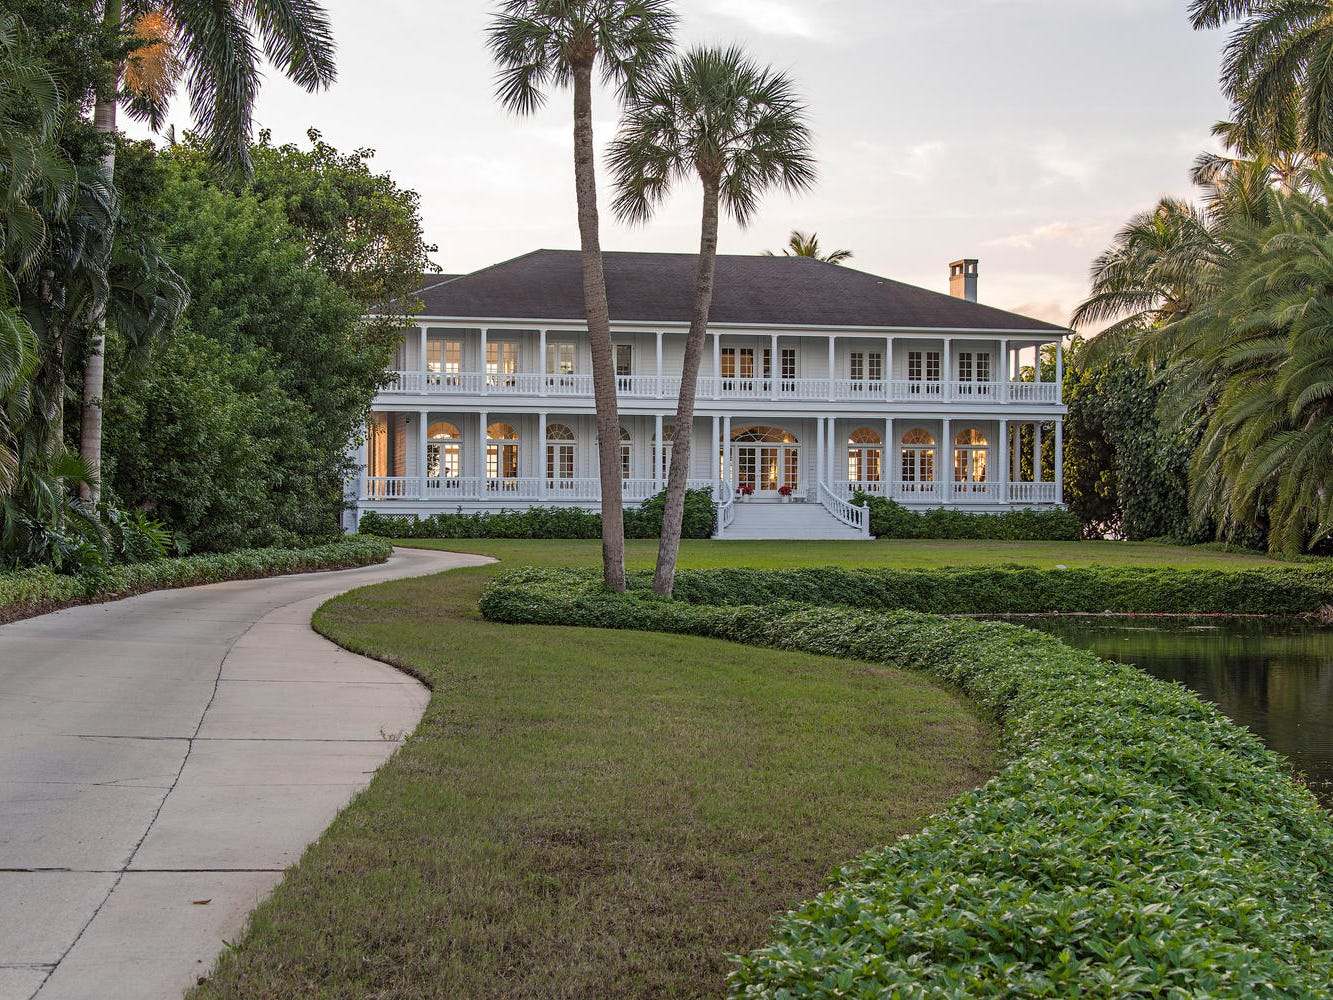 This Southern-Colonial mansion — a 2.53-acre beachfront property at 2440 Gordon Drive that sold in January for $22.5 million — was demolished on March 11, 2019.